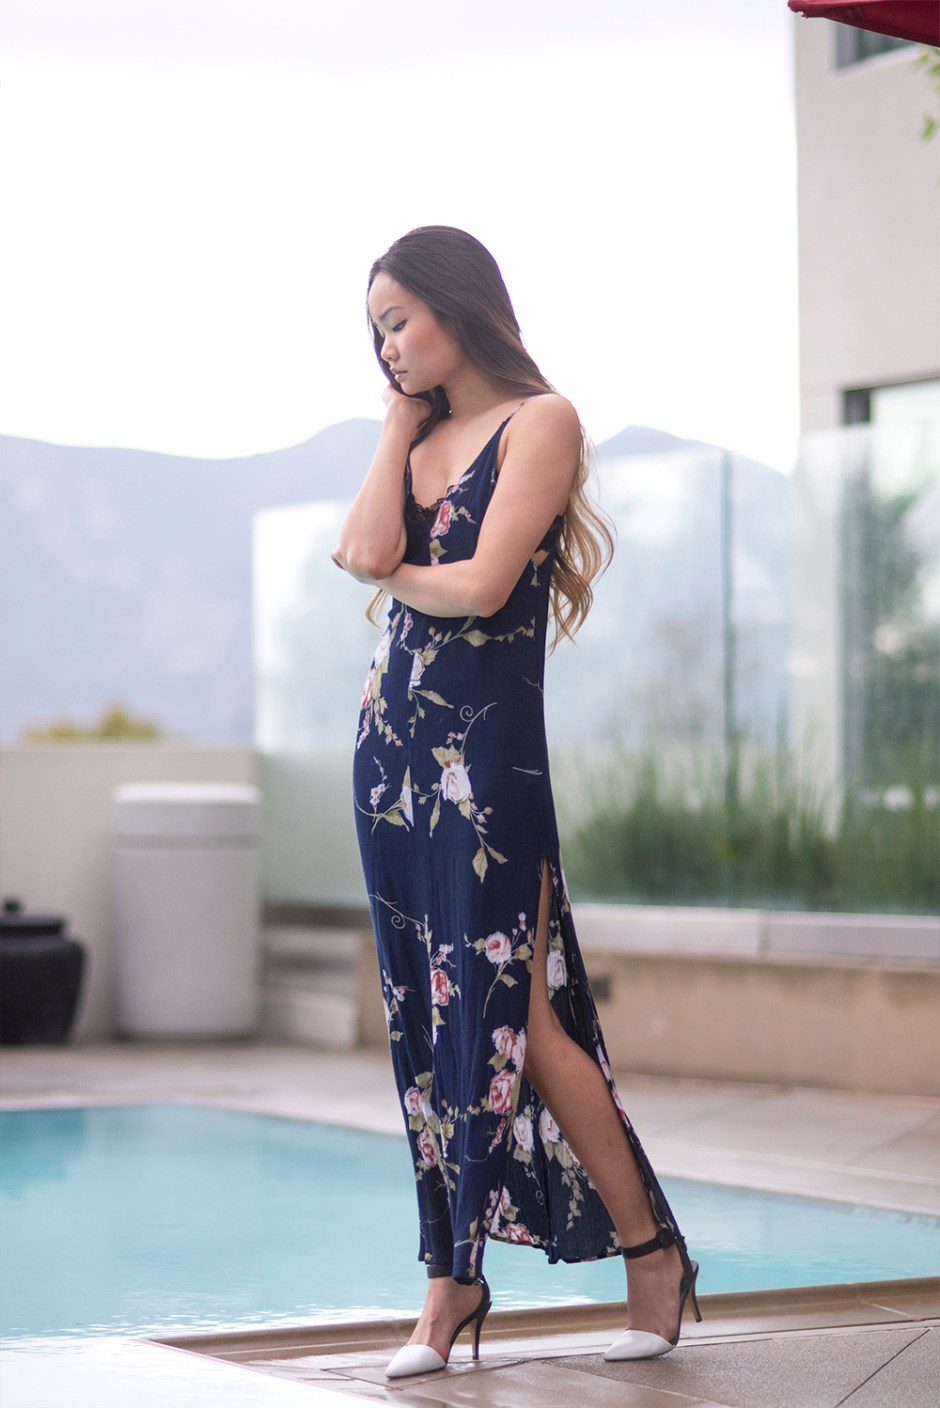 Poolside Lounging in Floral Maxis